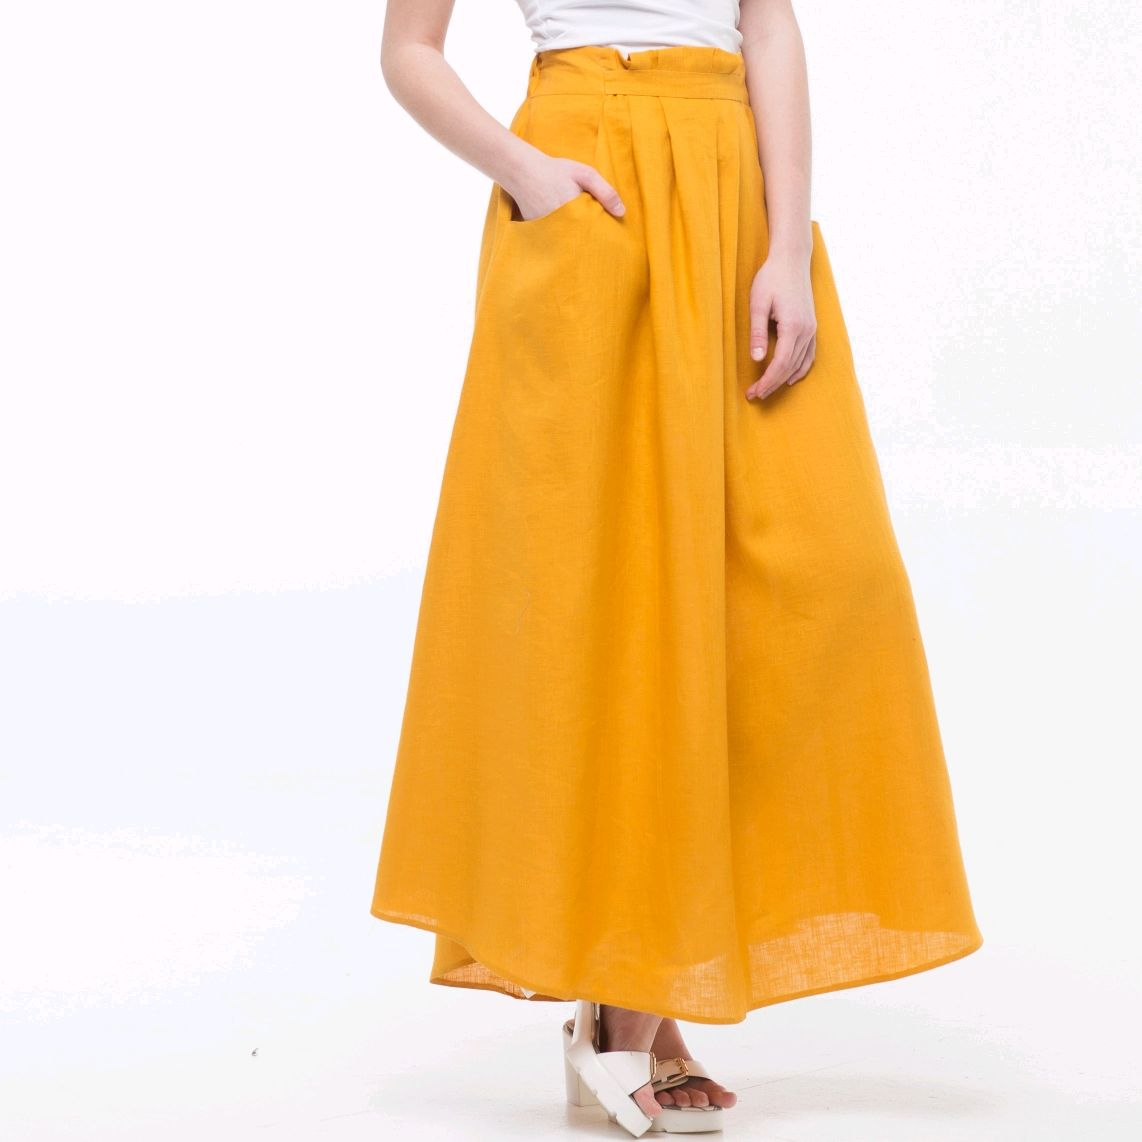 Skirt made of 100% linen mustard color, Skirts, Tomsk,  Фото №1